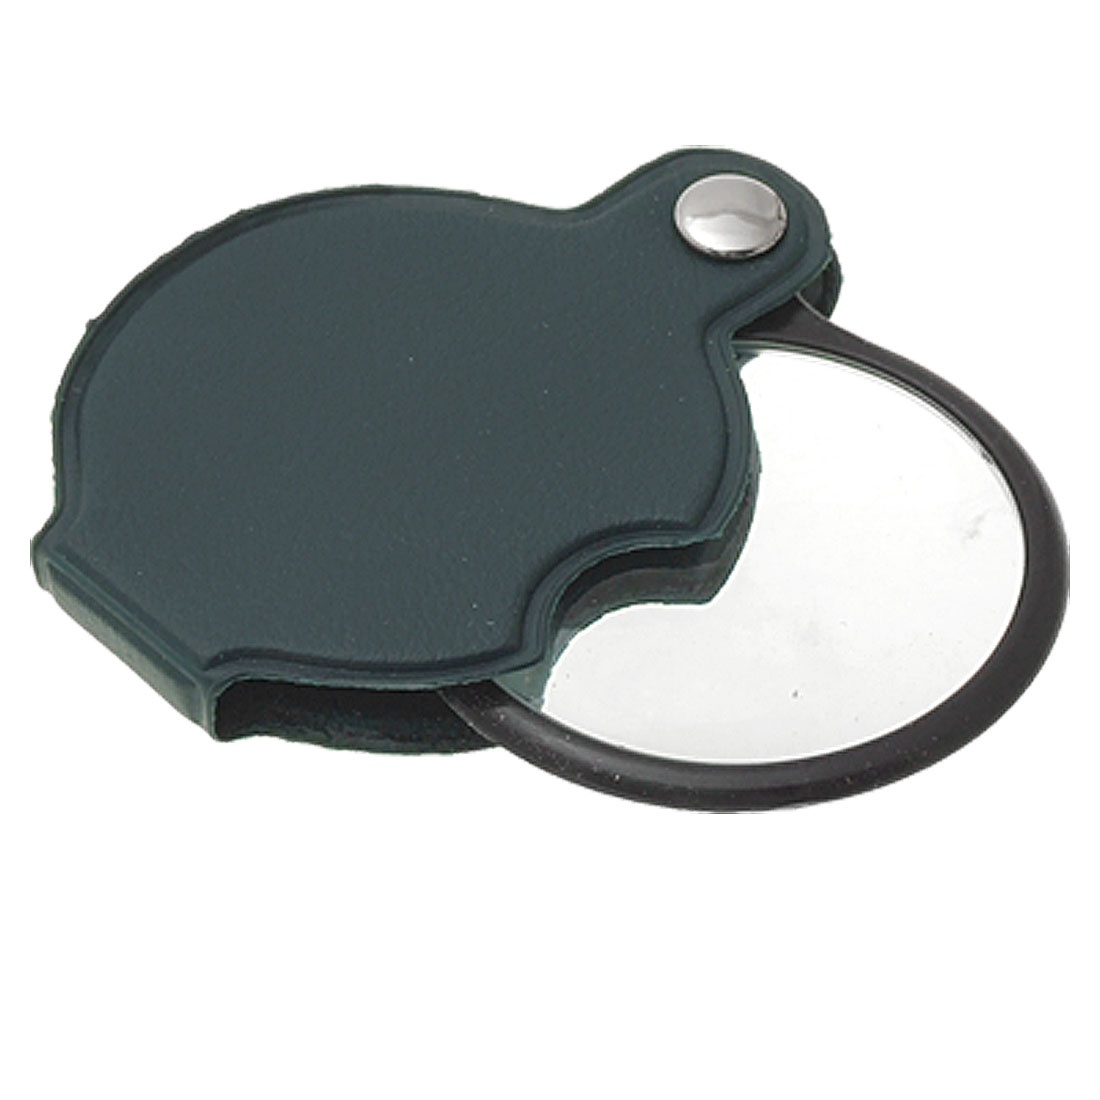 Portable Pop-out Glass Magnifier Loupe with Cover